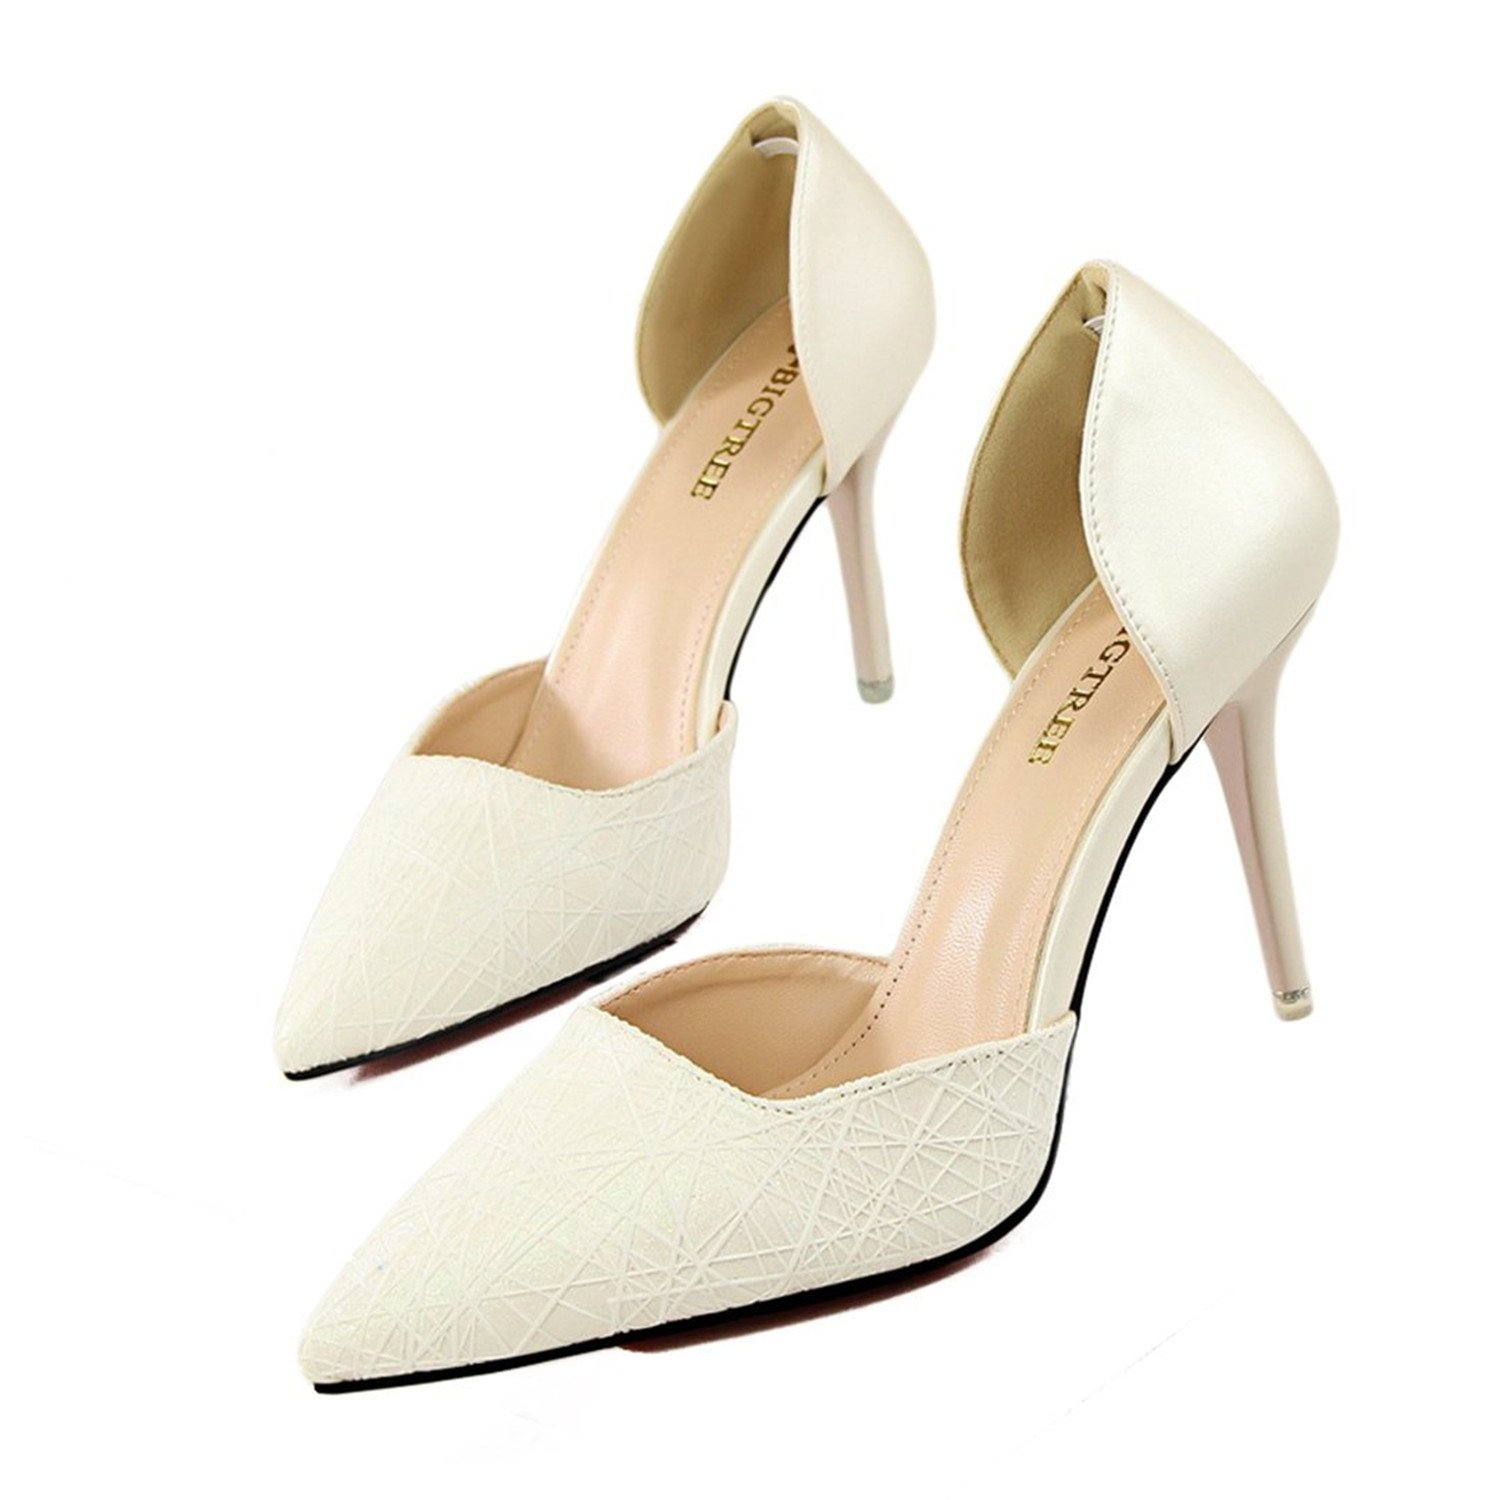 US M Gimekiss Pumps Red Bottom Heel Pumps Women Wedding Nightclub Show Party Pointed Toe Shoes Woman White6 B